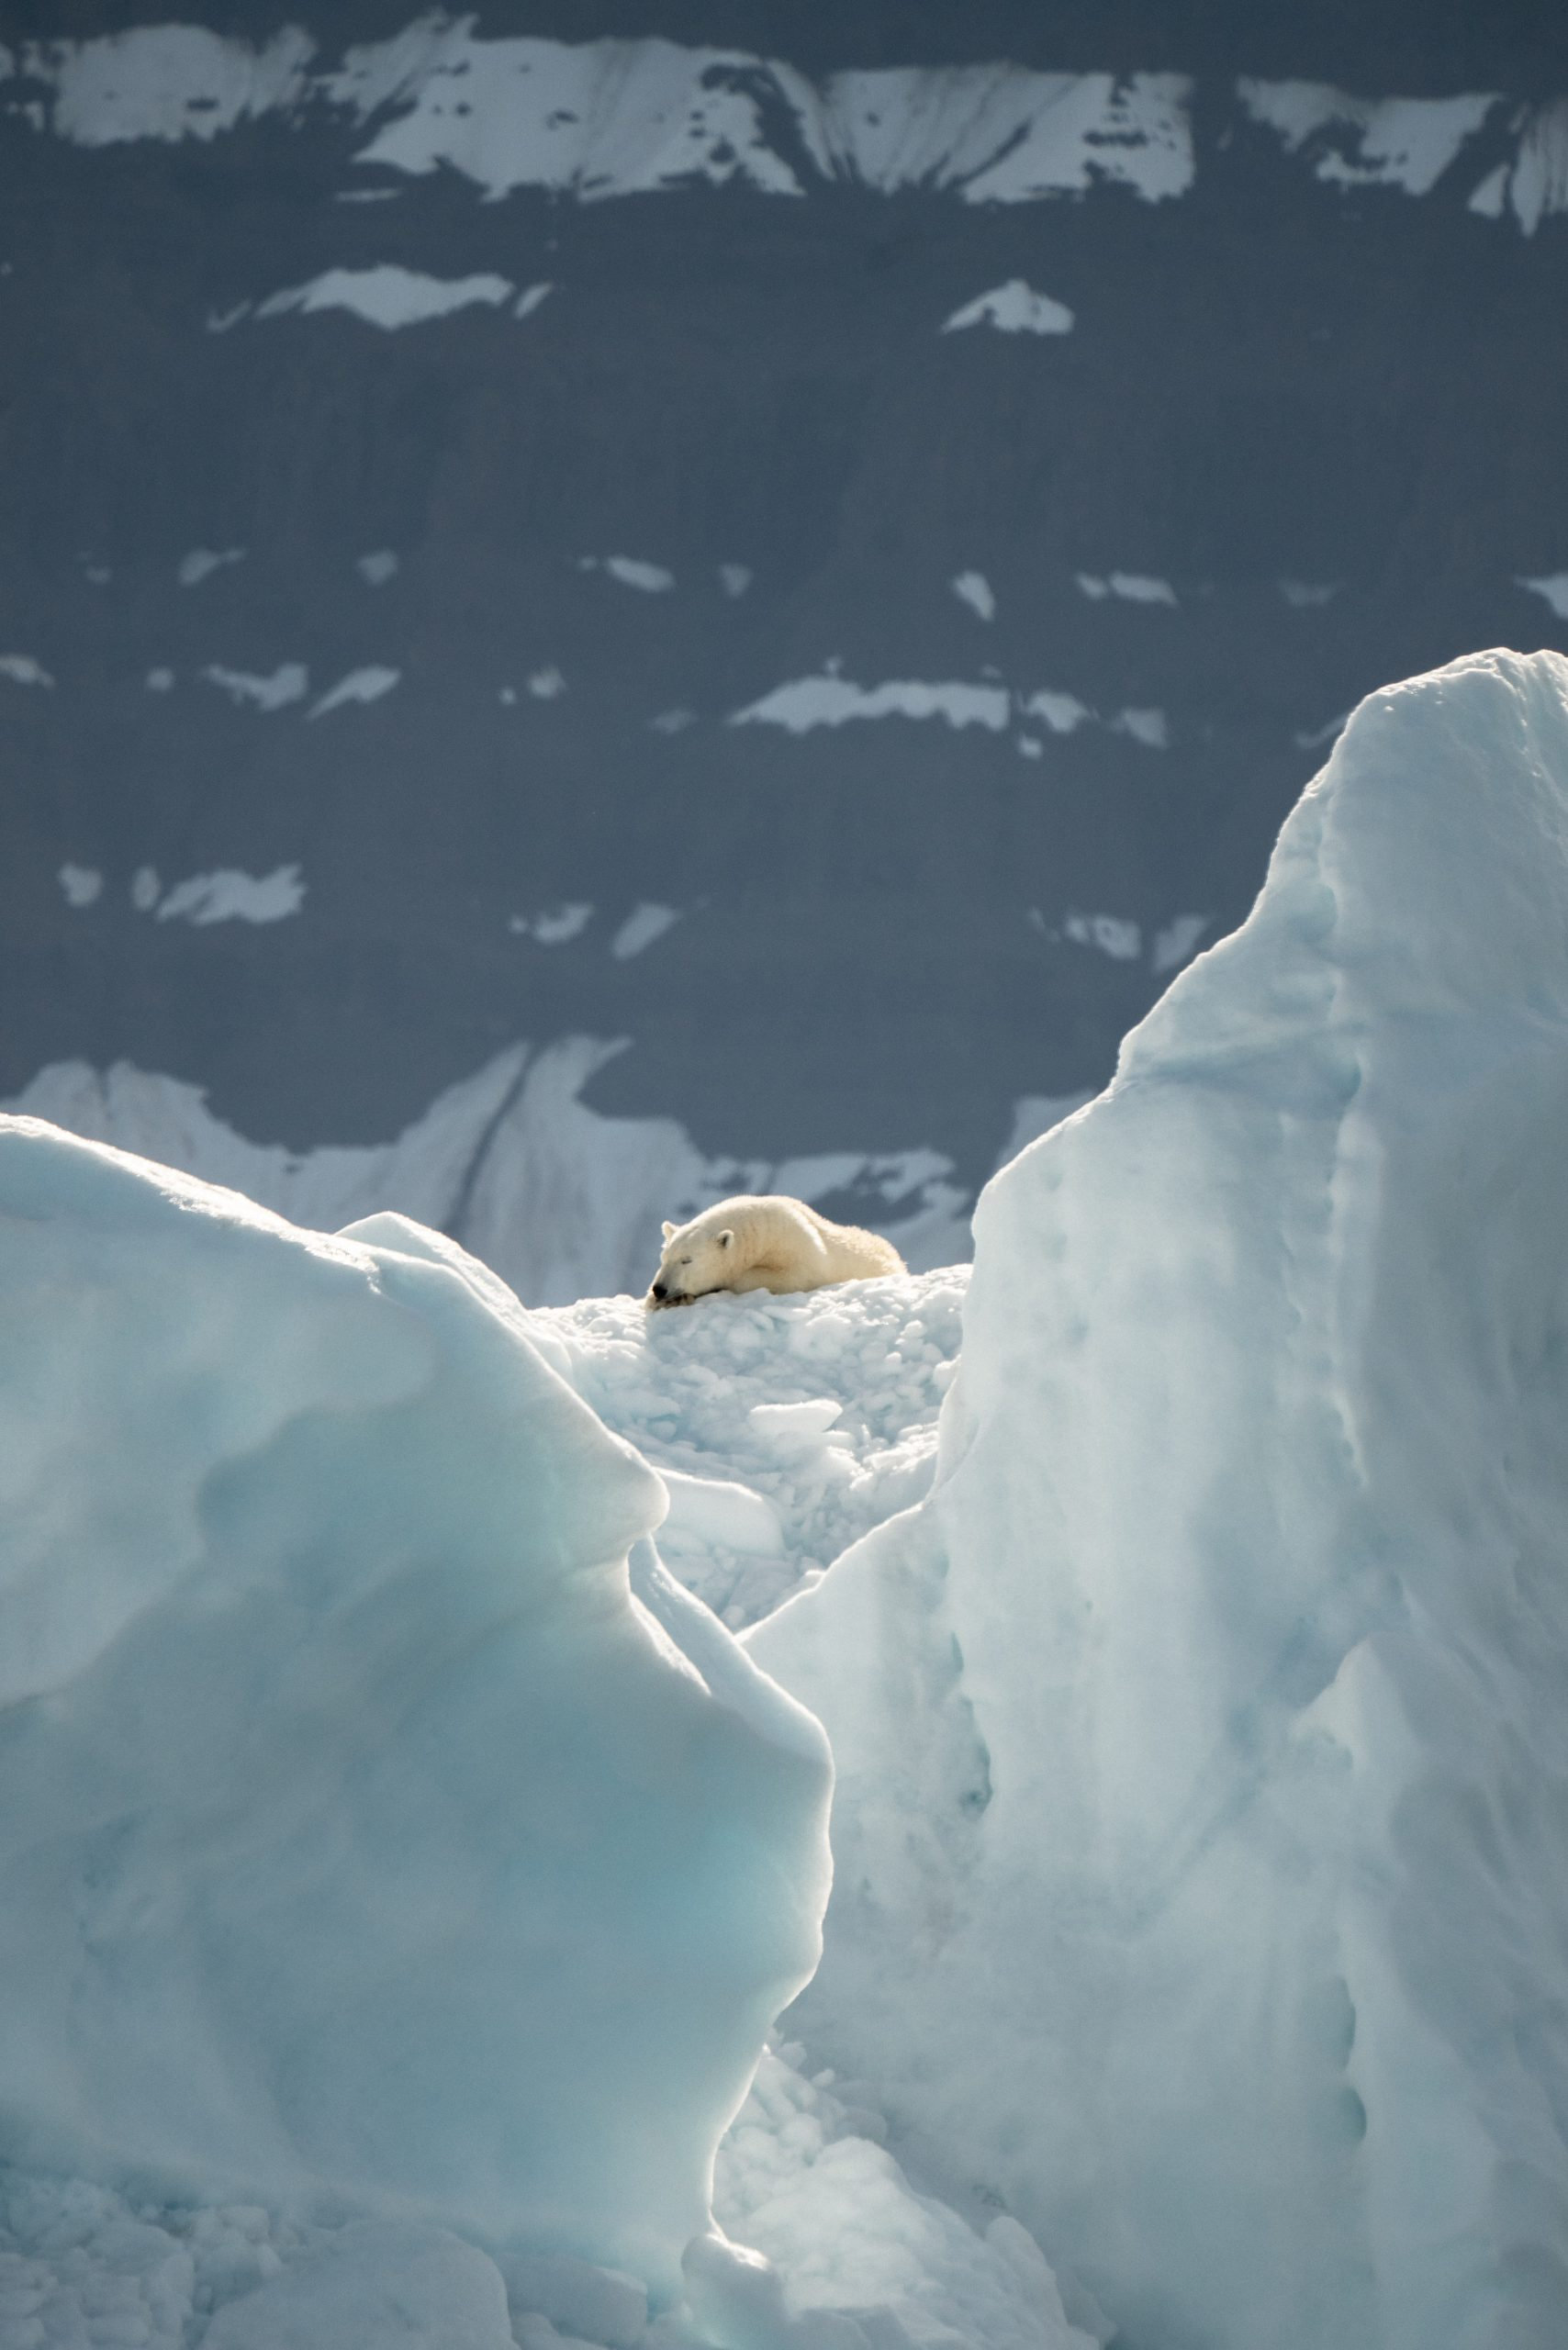 selective focus photography of polar bear on ice during daytime